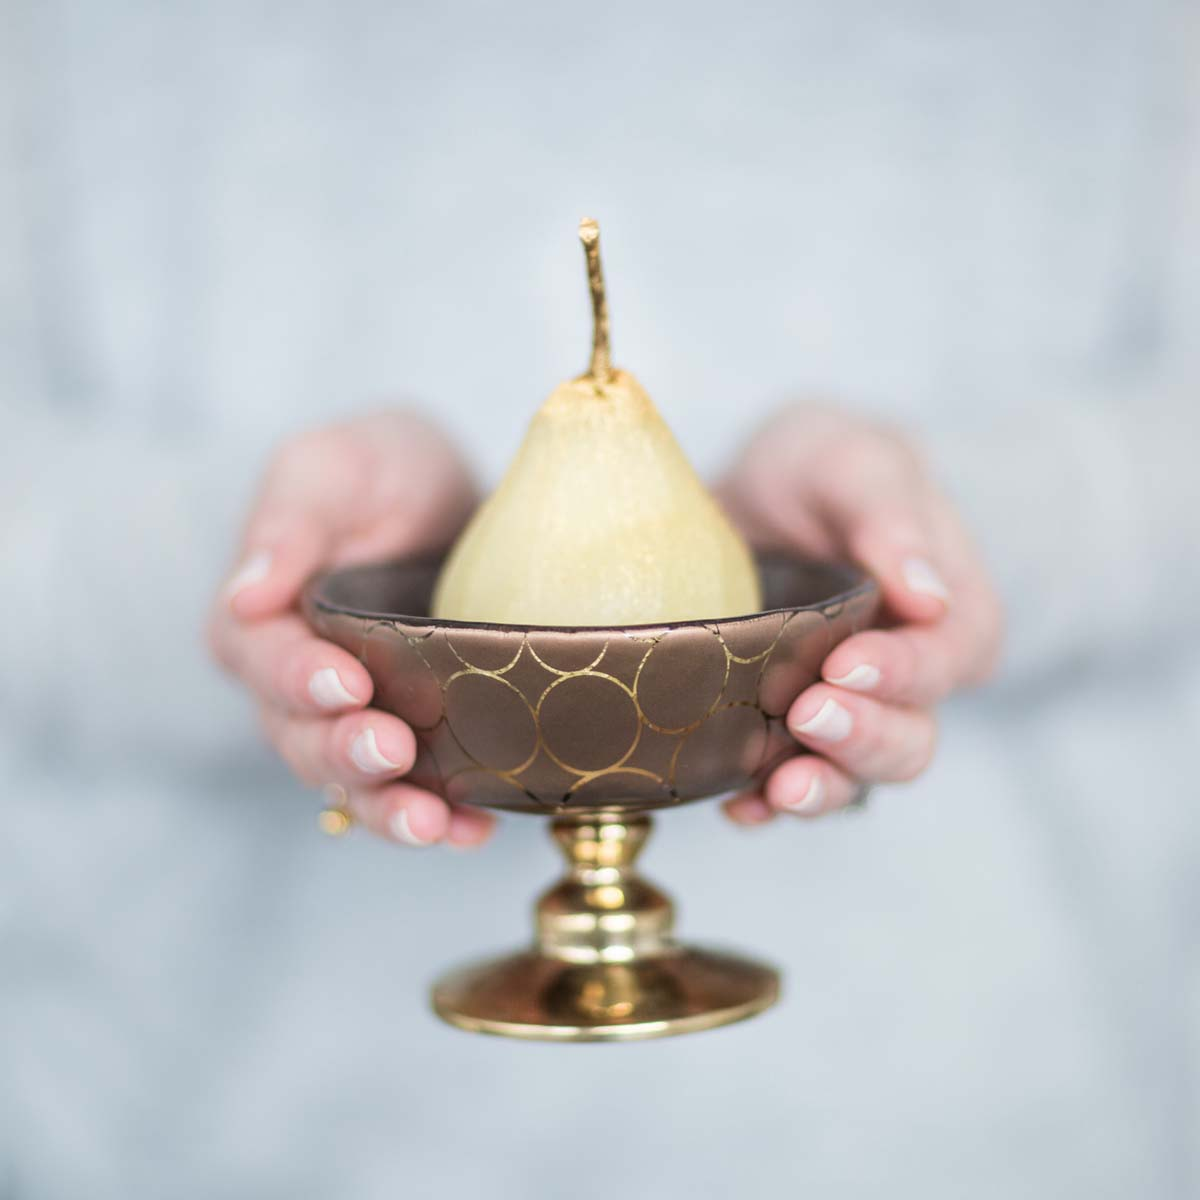 woman's hands holding a retro pattern brown trifle bowl with pedestal and pear